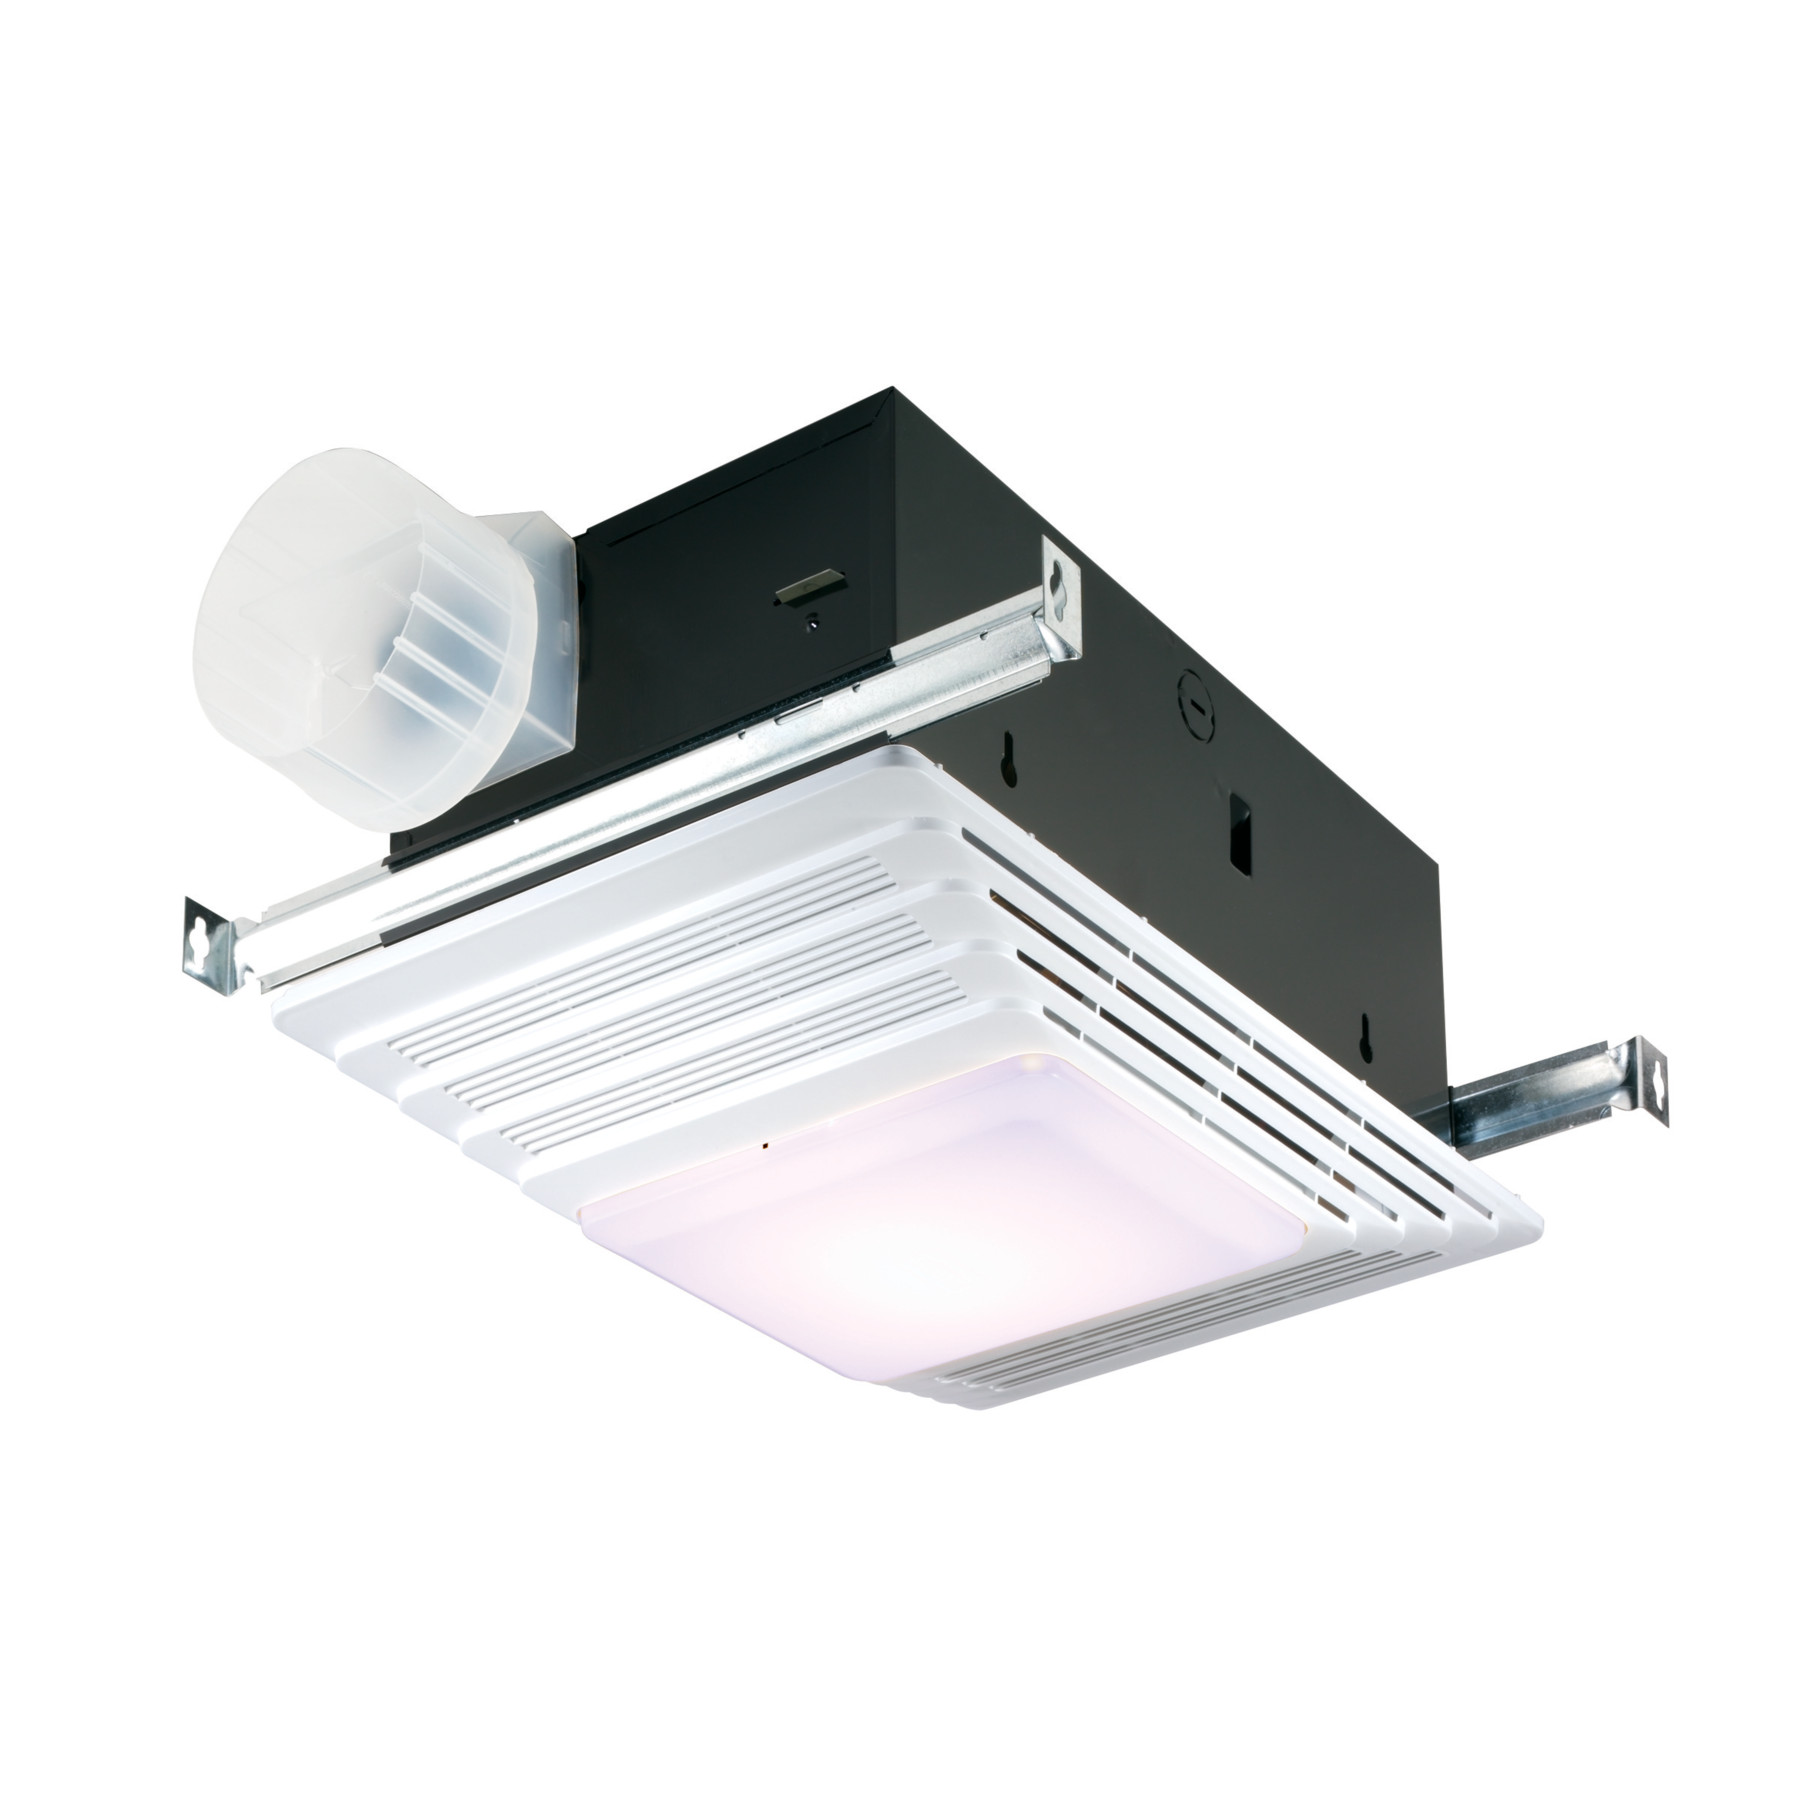 bath and exhaust ventilation fans with